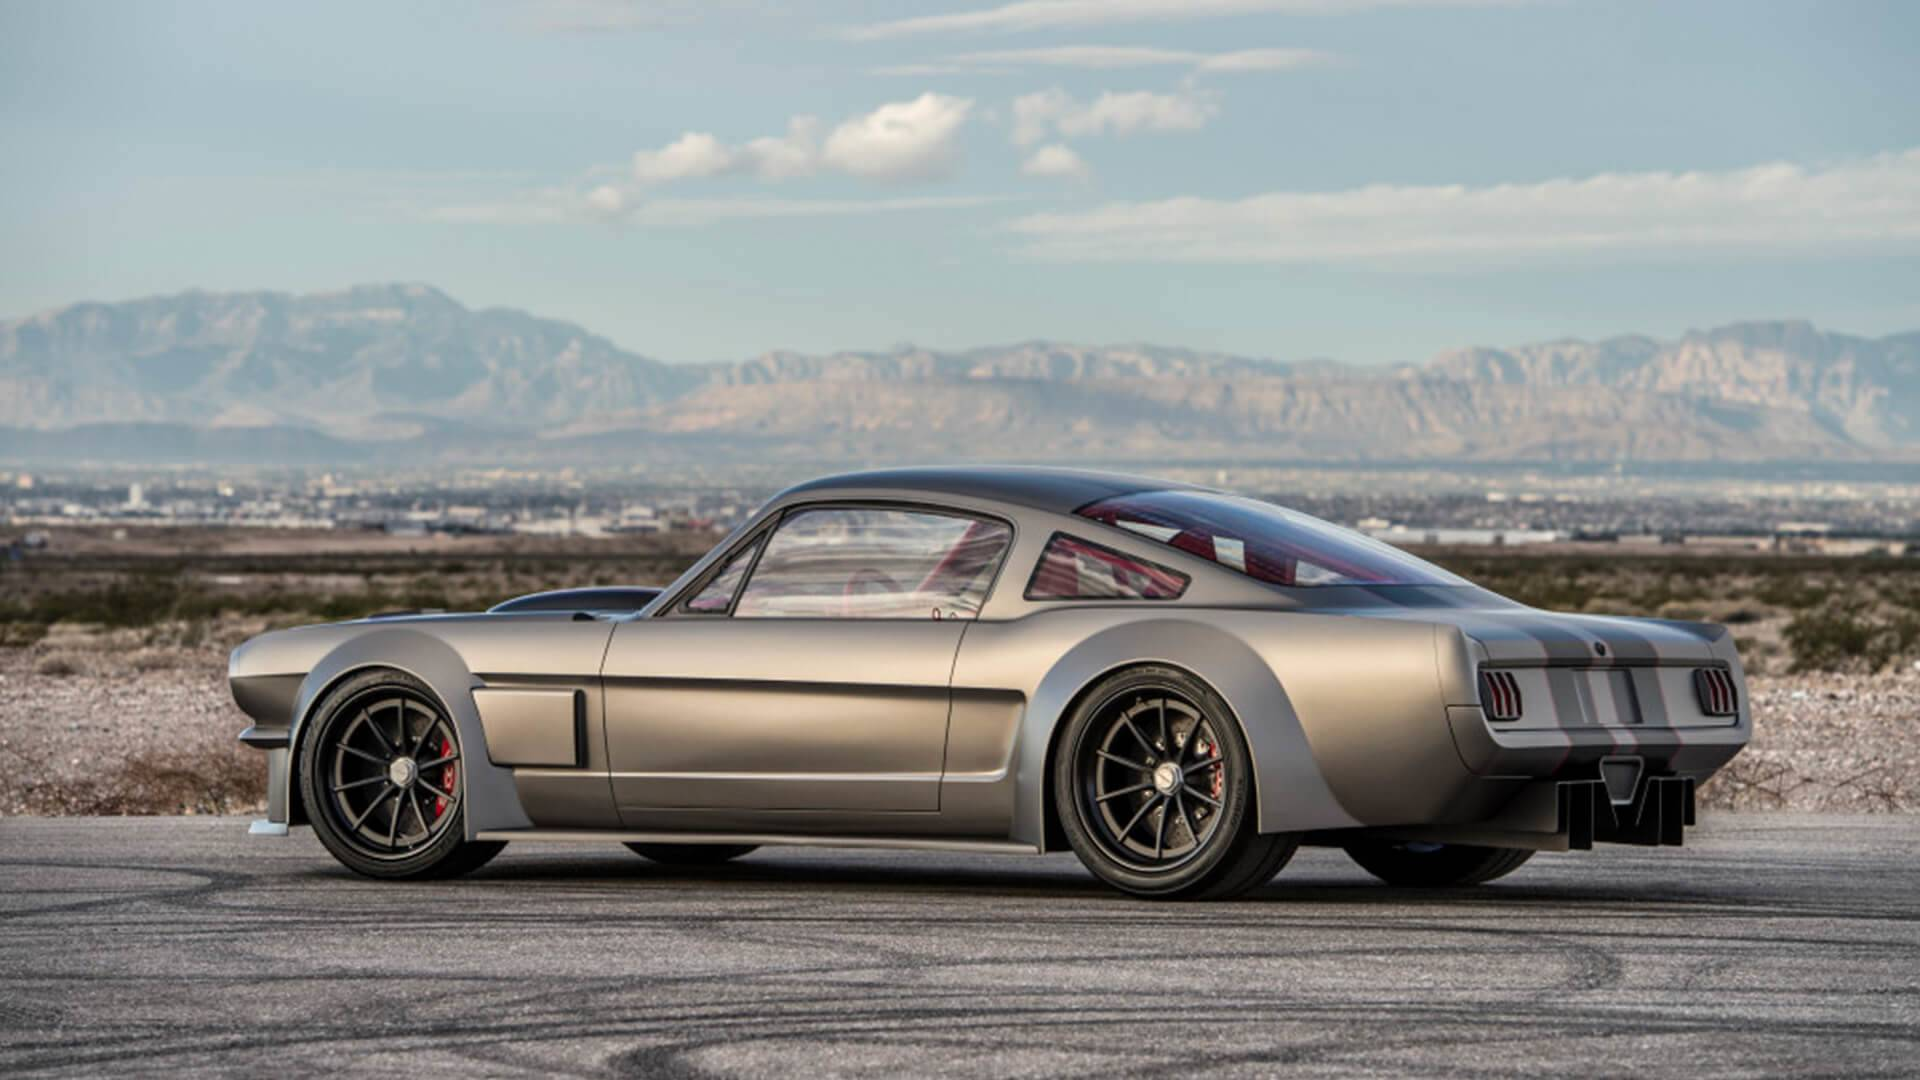 Check out this vicious 1000 horsepower 1965 ford mustang